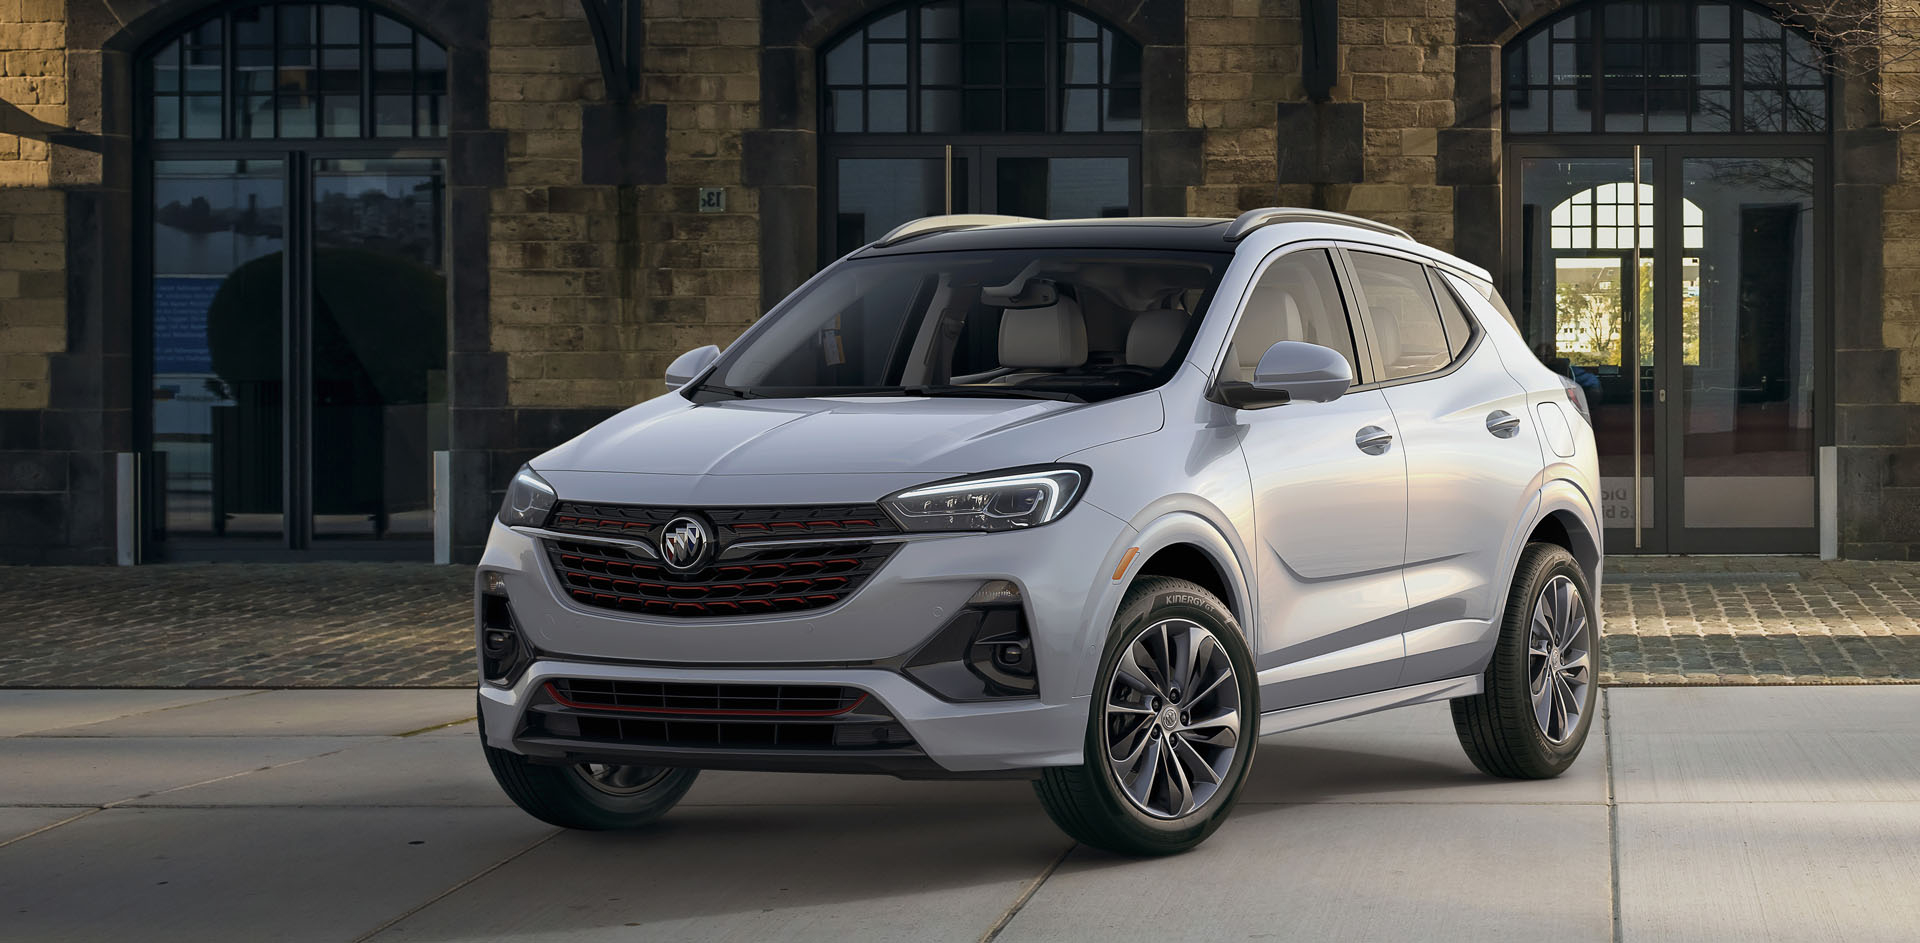 Buick Reveals U.s. Specs For The 2020 Encore Gx When Will The 2022 Buick Encore Gx Be Available